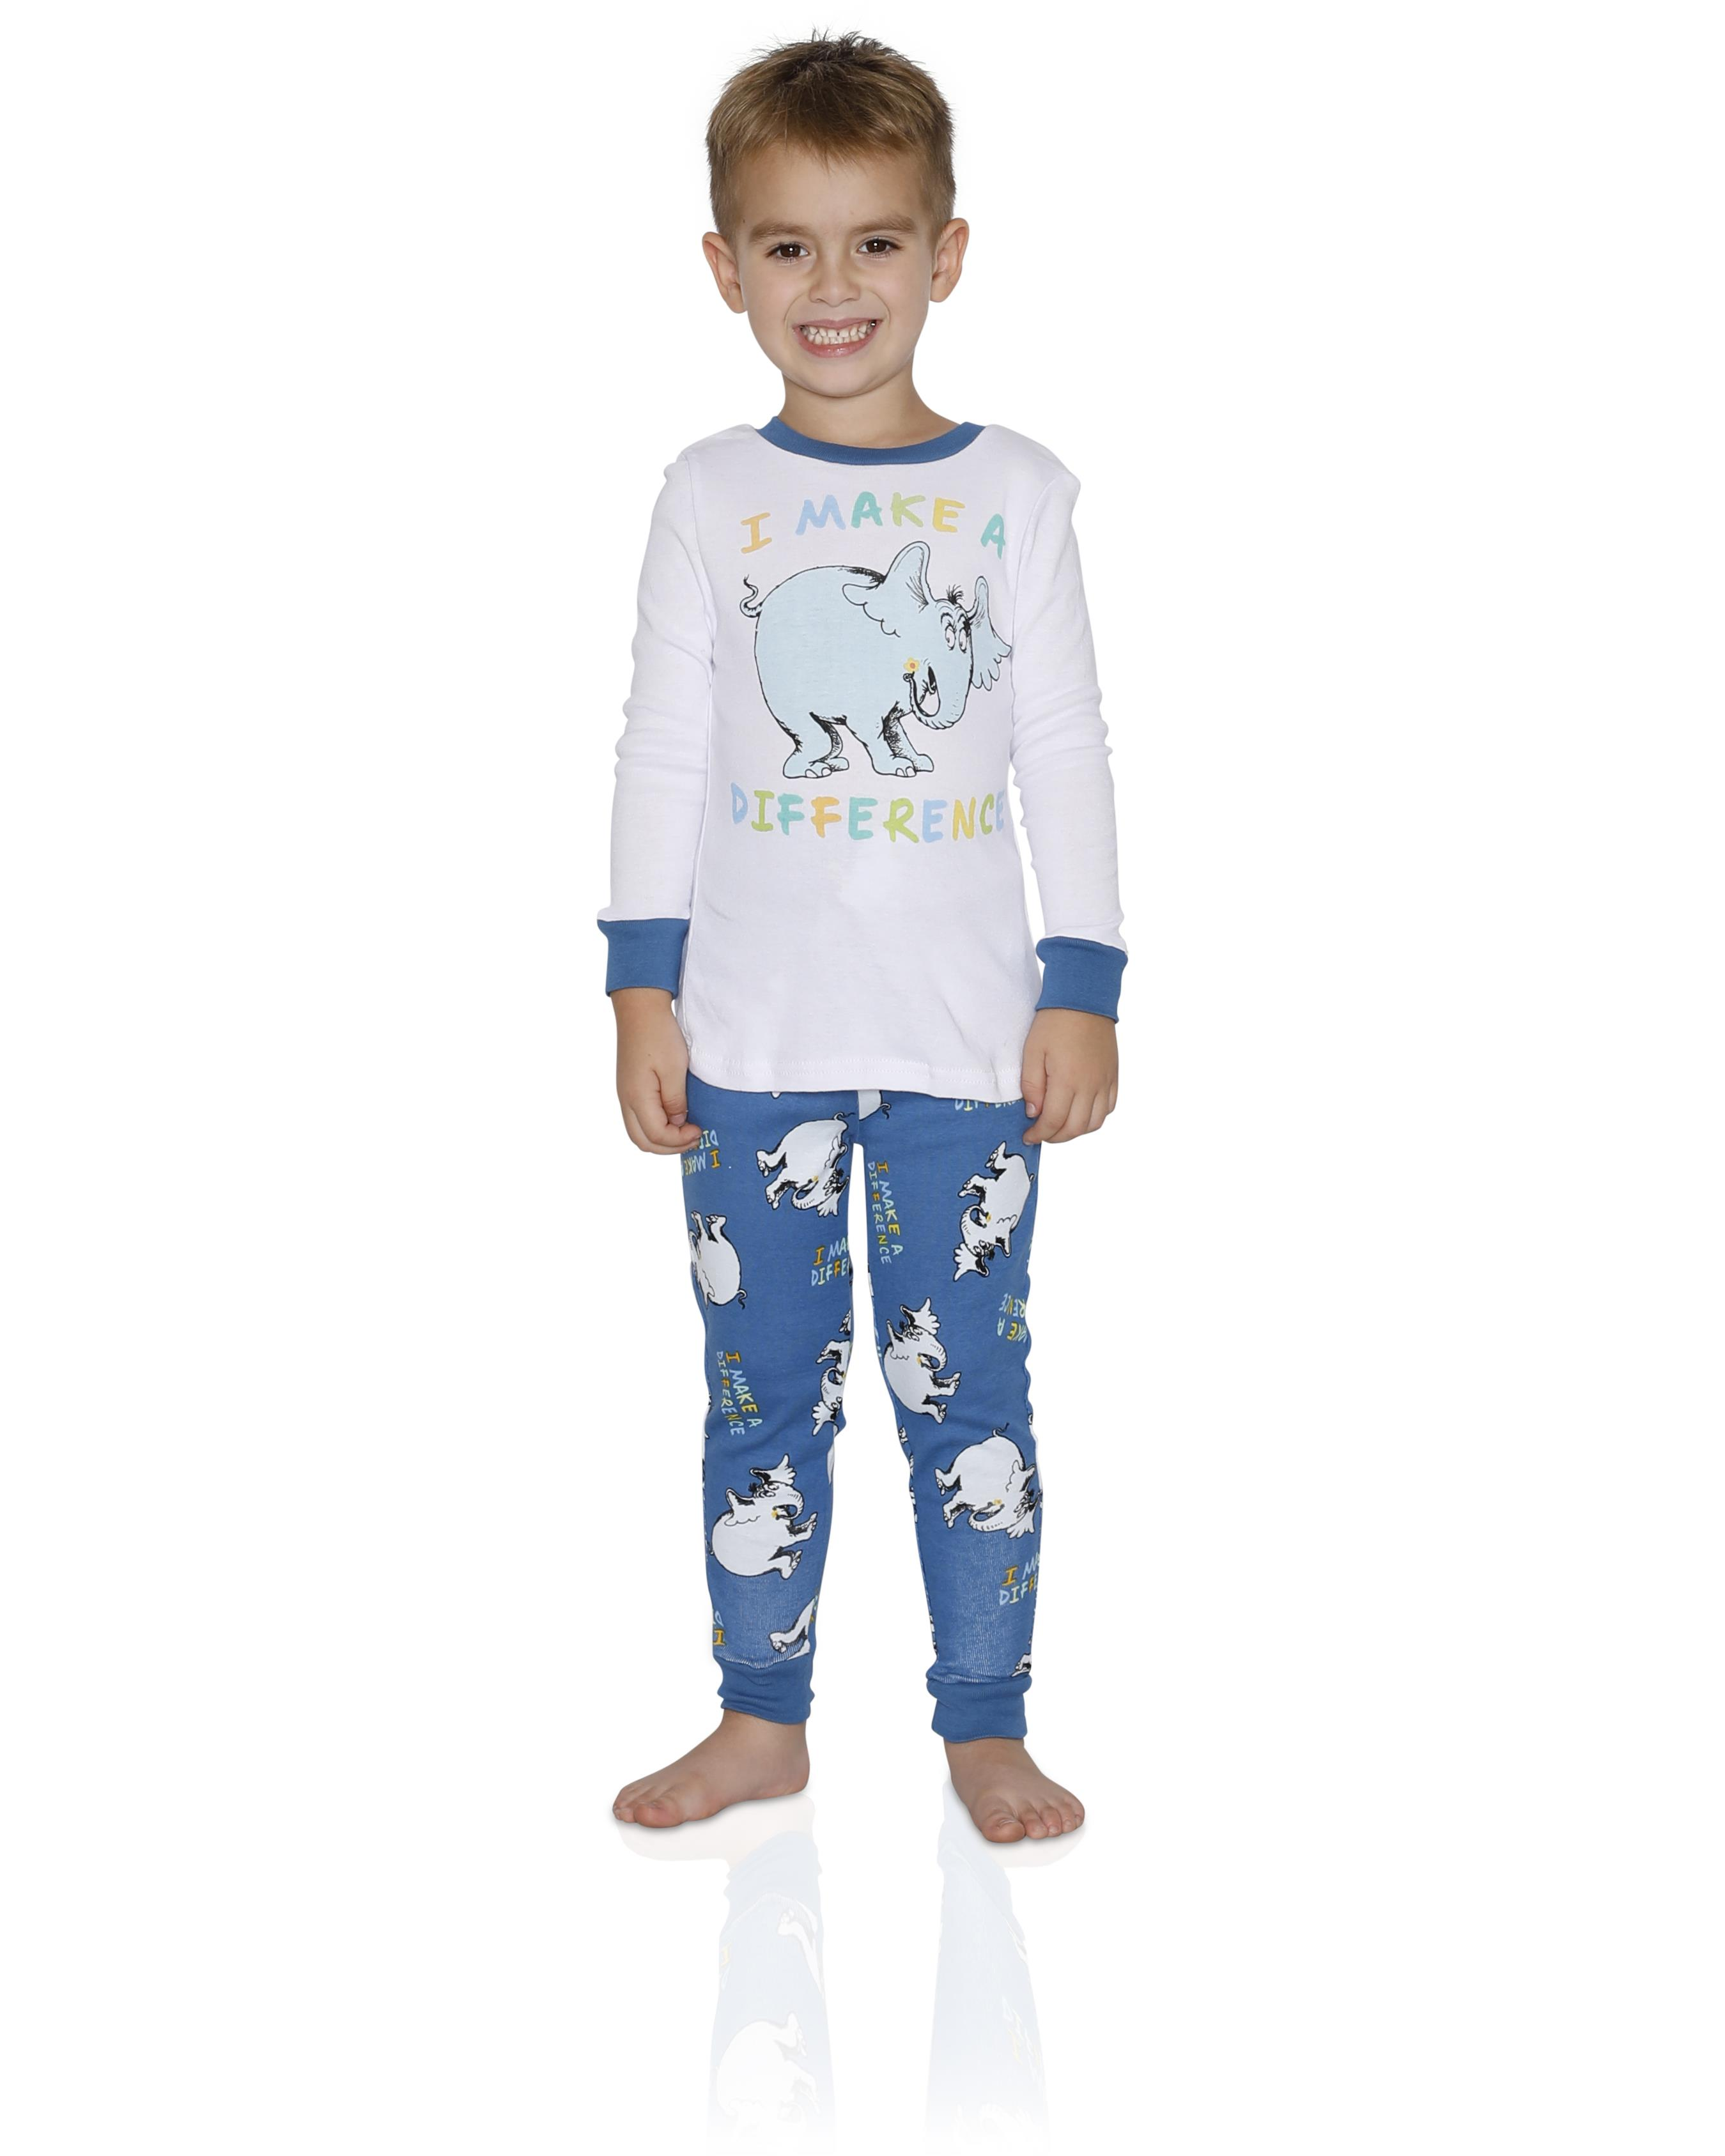 Dr. Seuss Boys Tight Fit Cotton Pajama 2 Piece Sleepwear Set, I Make a Difference, Size: Medium 8